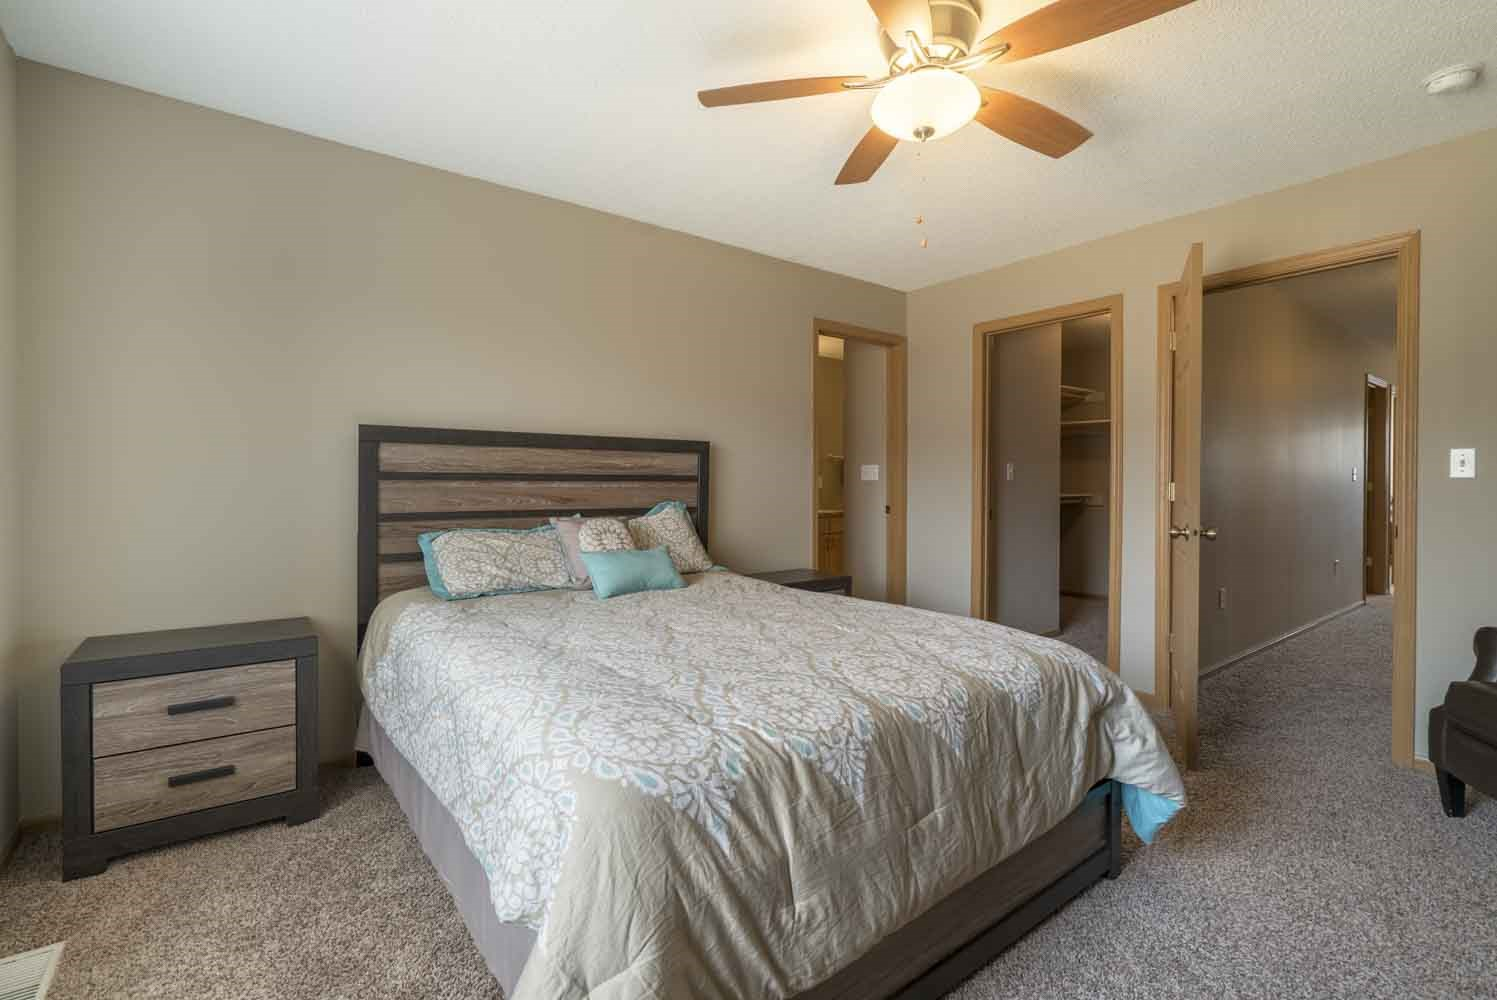 Master bedroom with walk-in closet and master bath at Southwind Villas in southwest Omaha in La Vista, NE, 68128